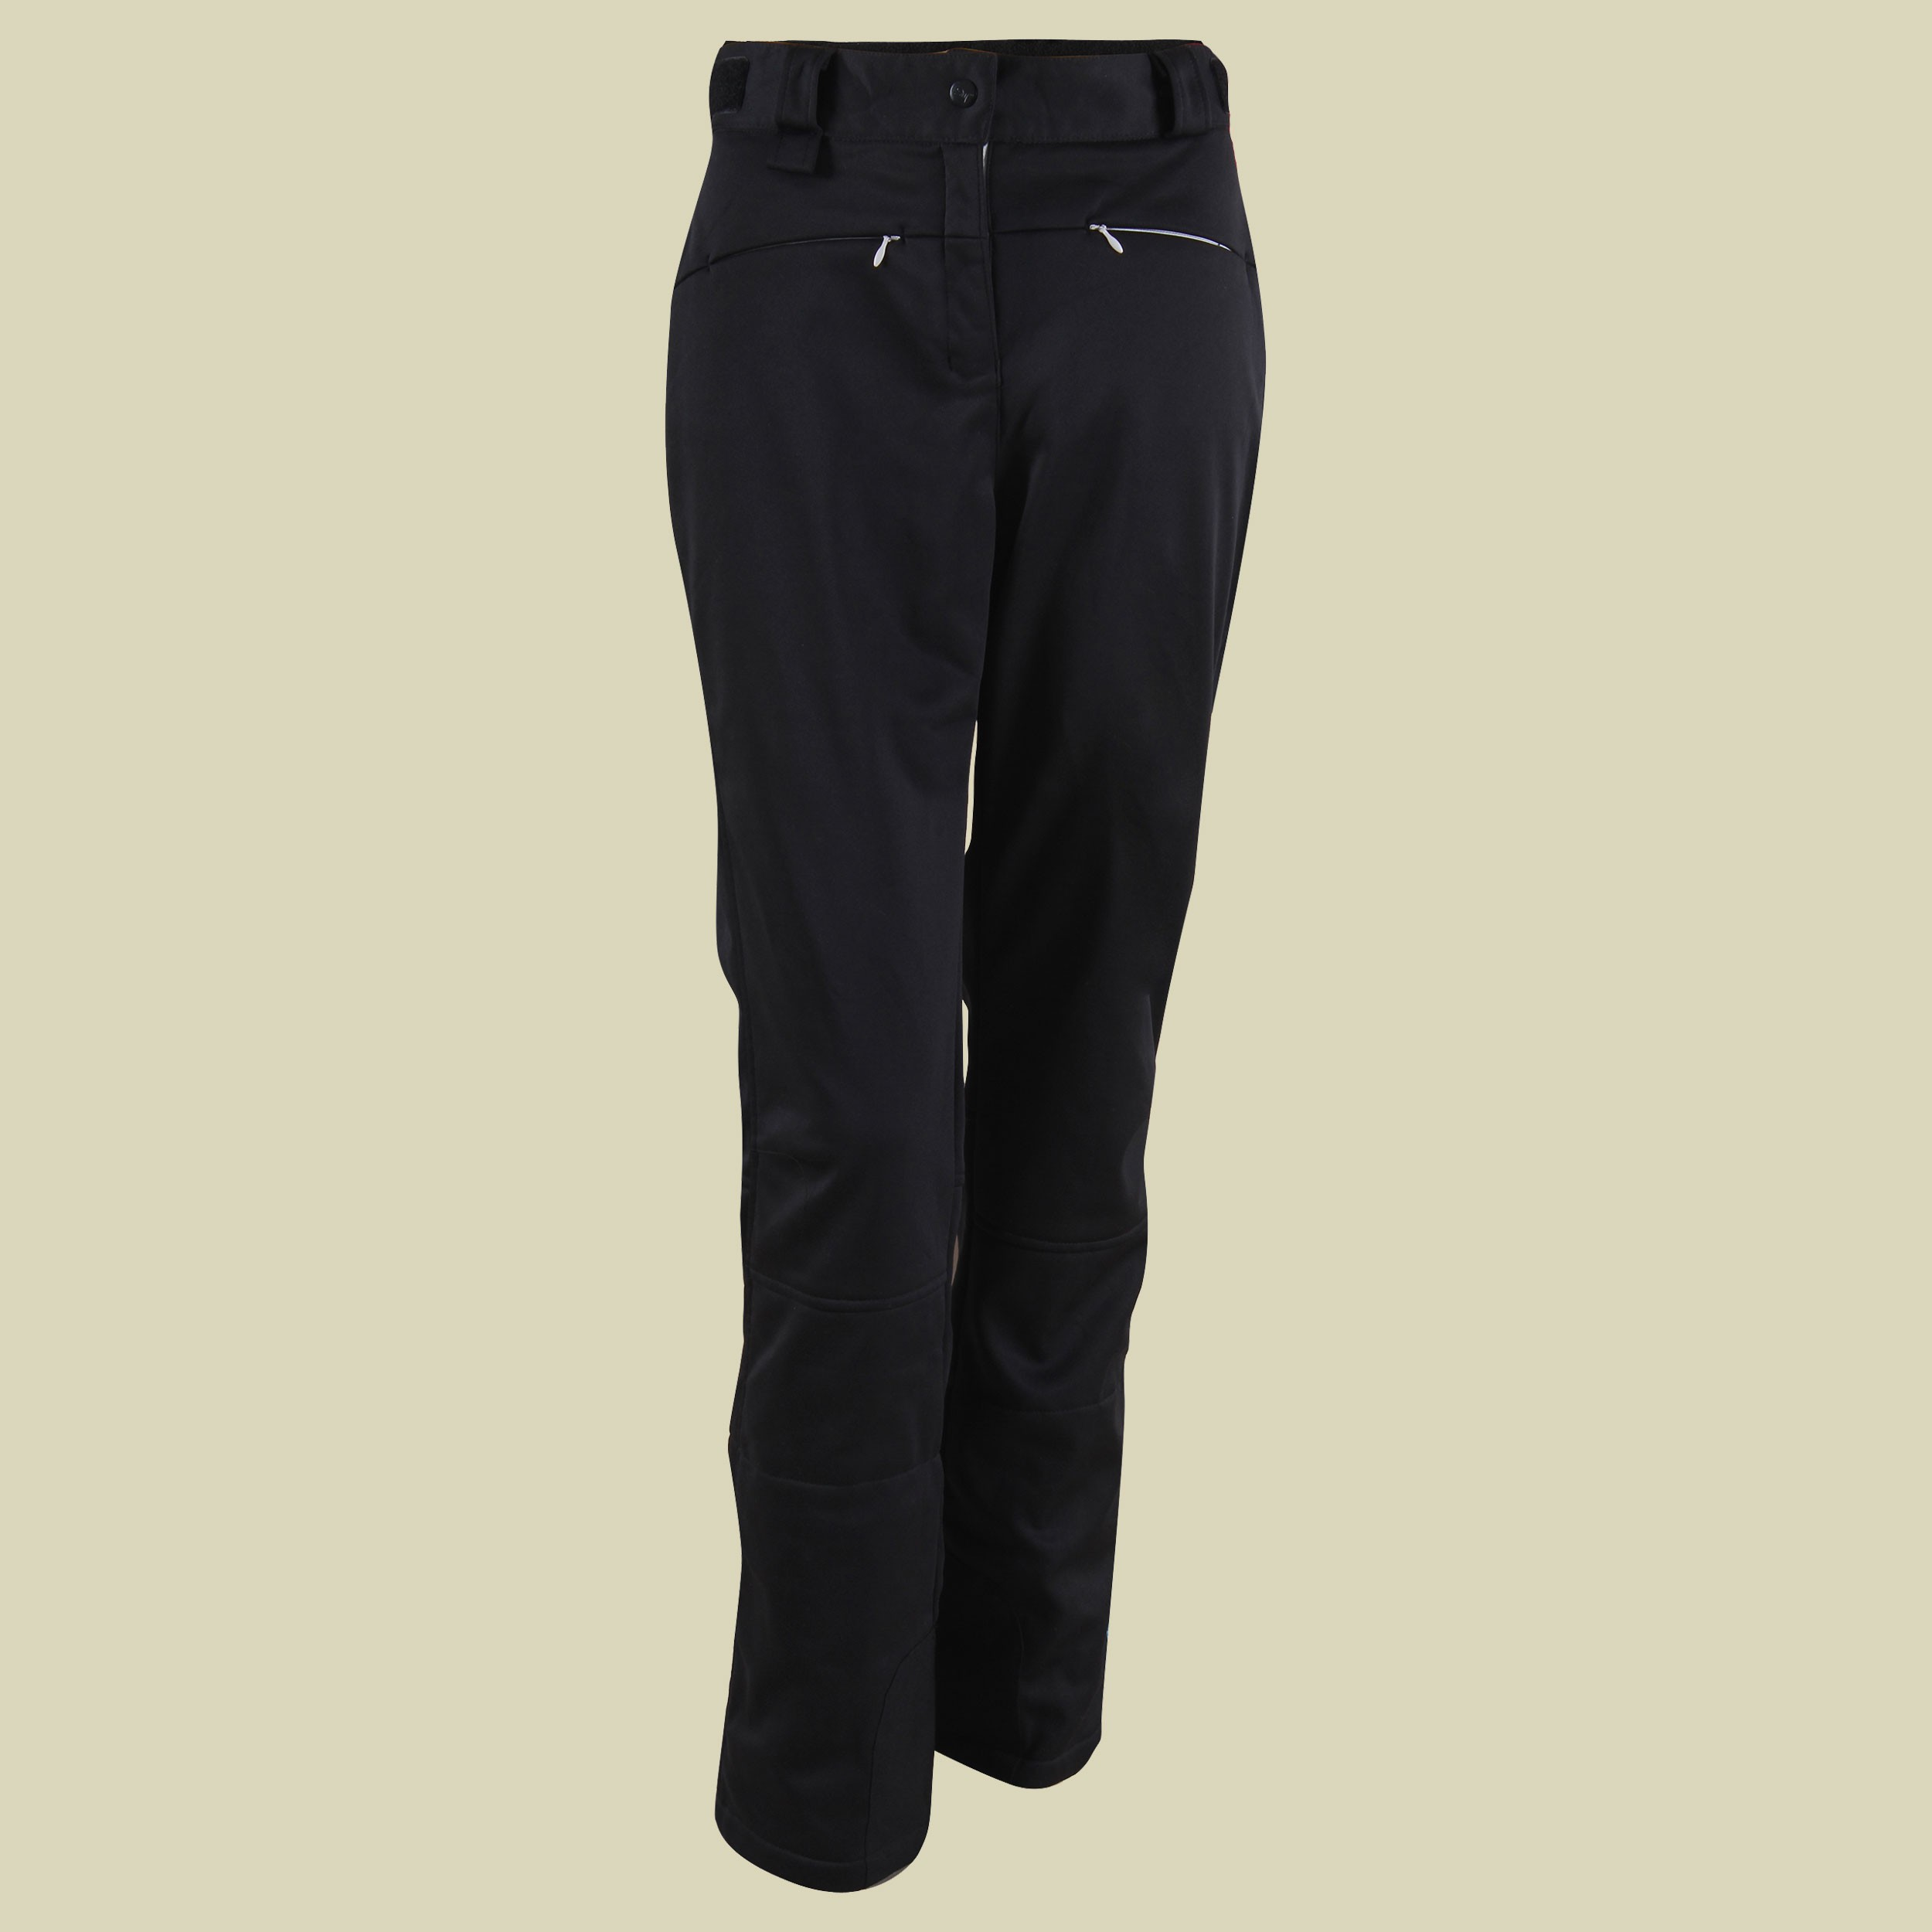 Bonäs Softshell Pants Women